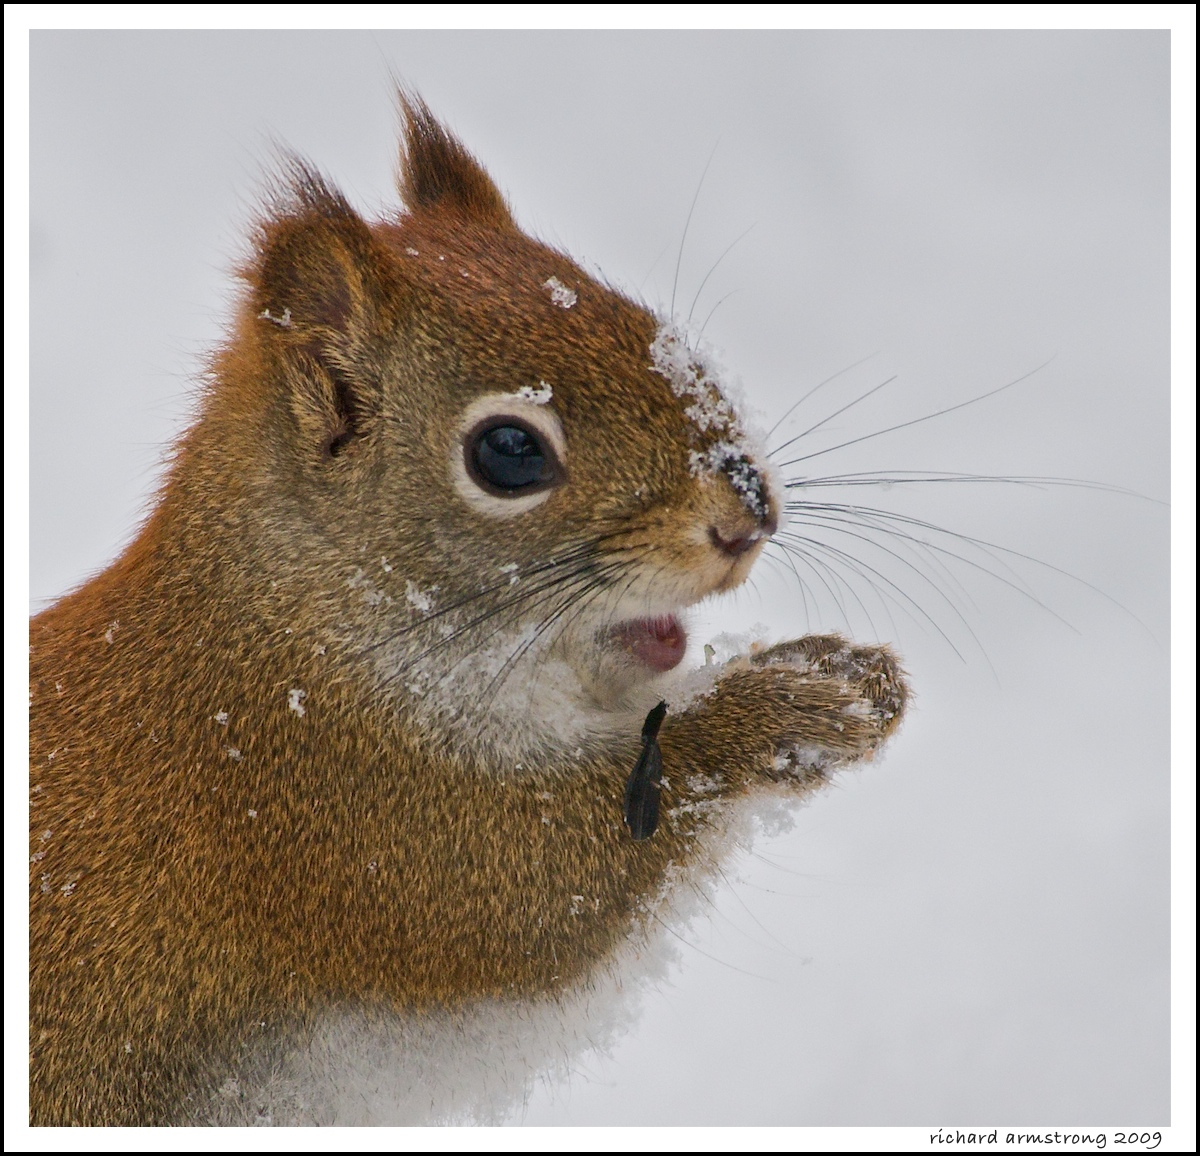 red squirrel author armstrong richard